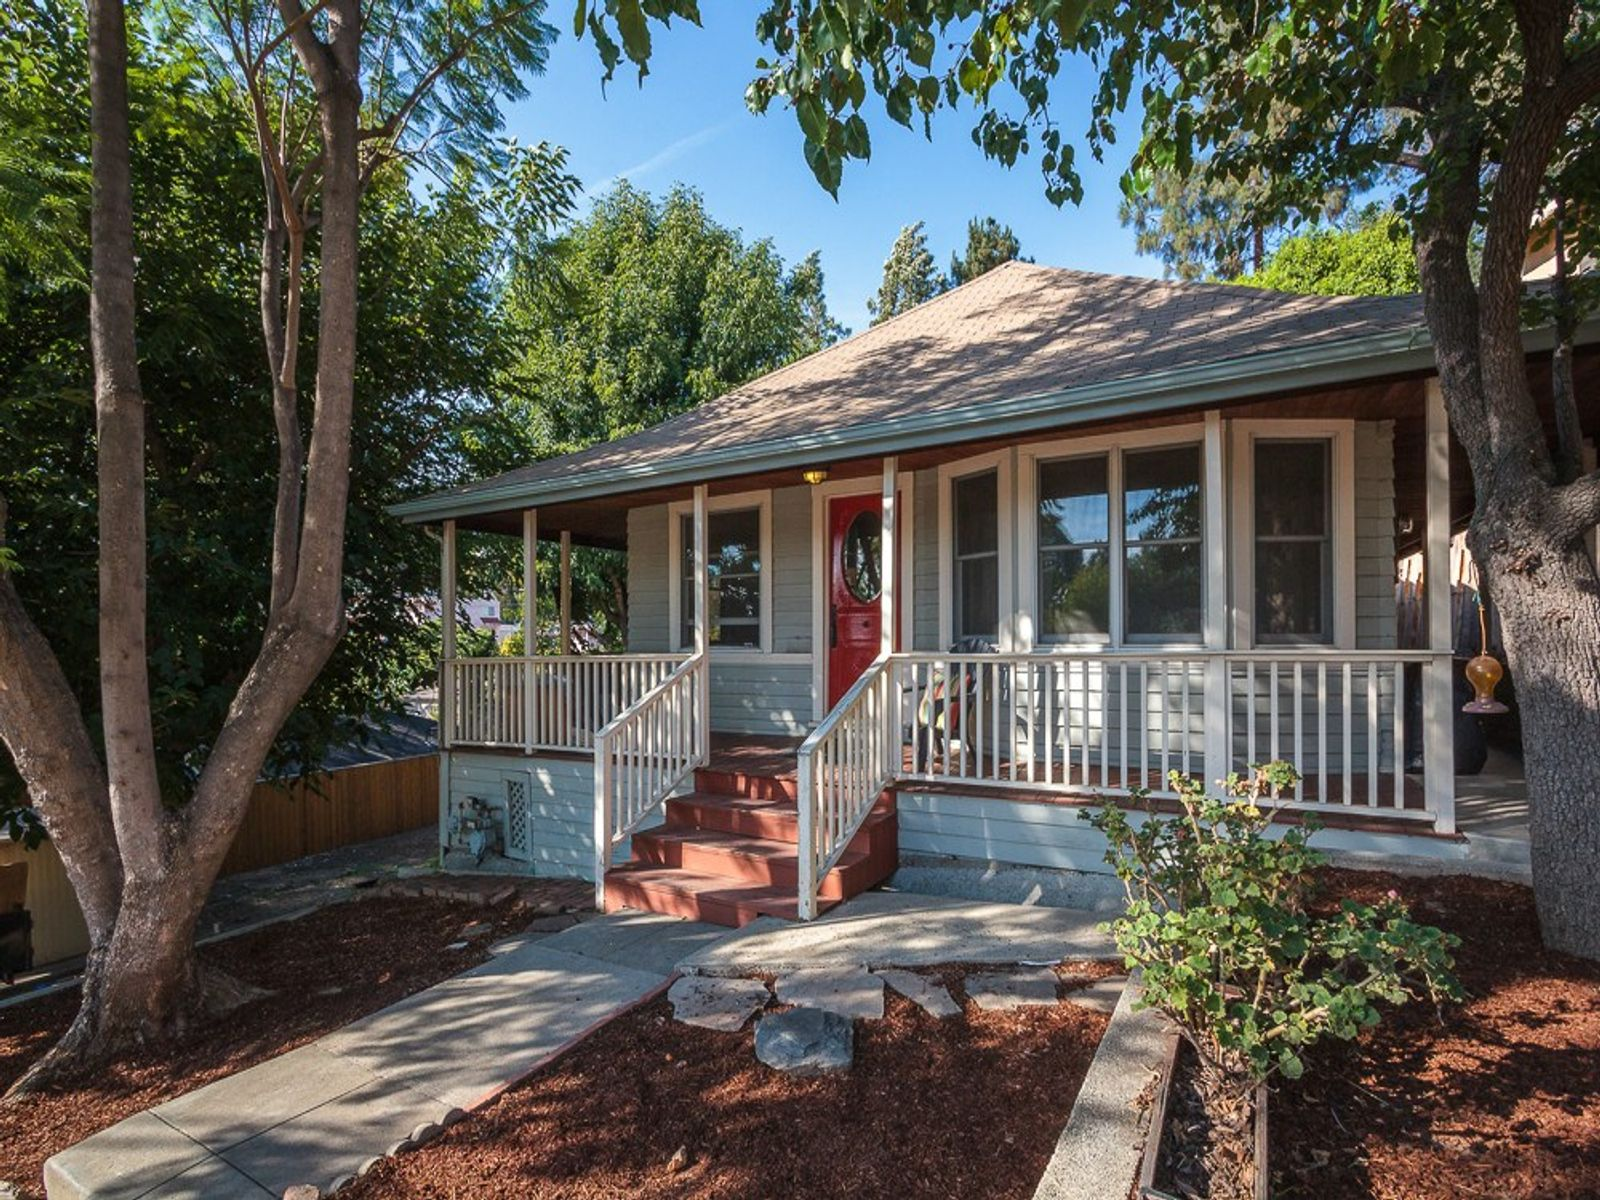 1543 Avalon Street, Los Angeles CA Single Family Home - Los Angeles Real Estate